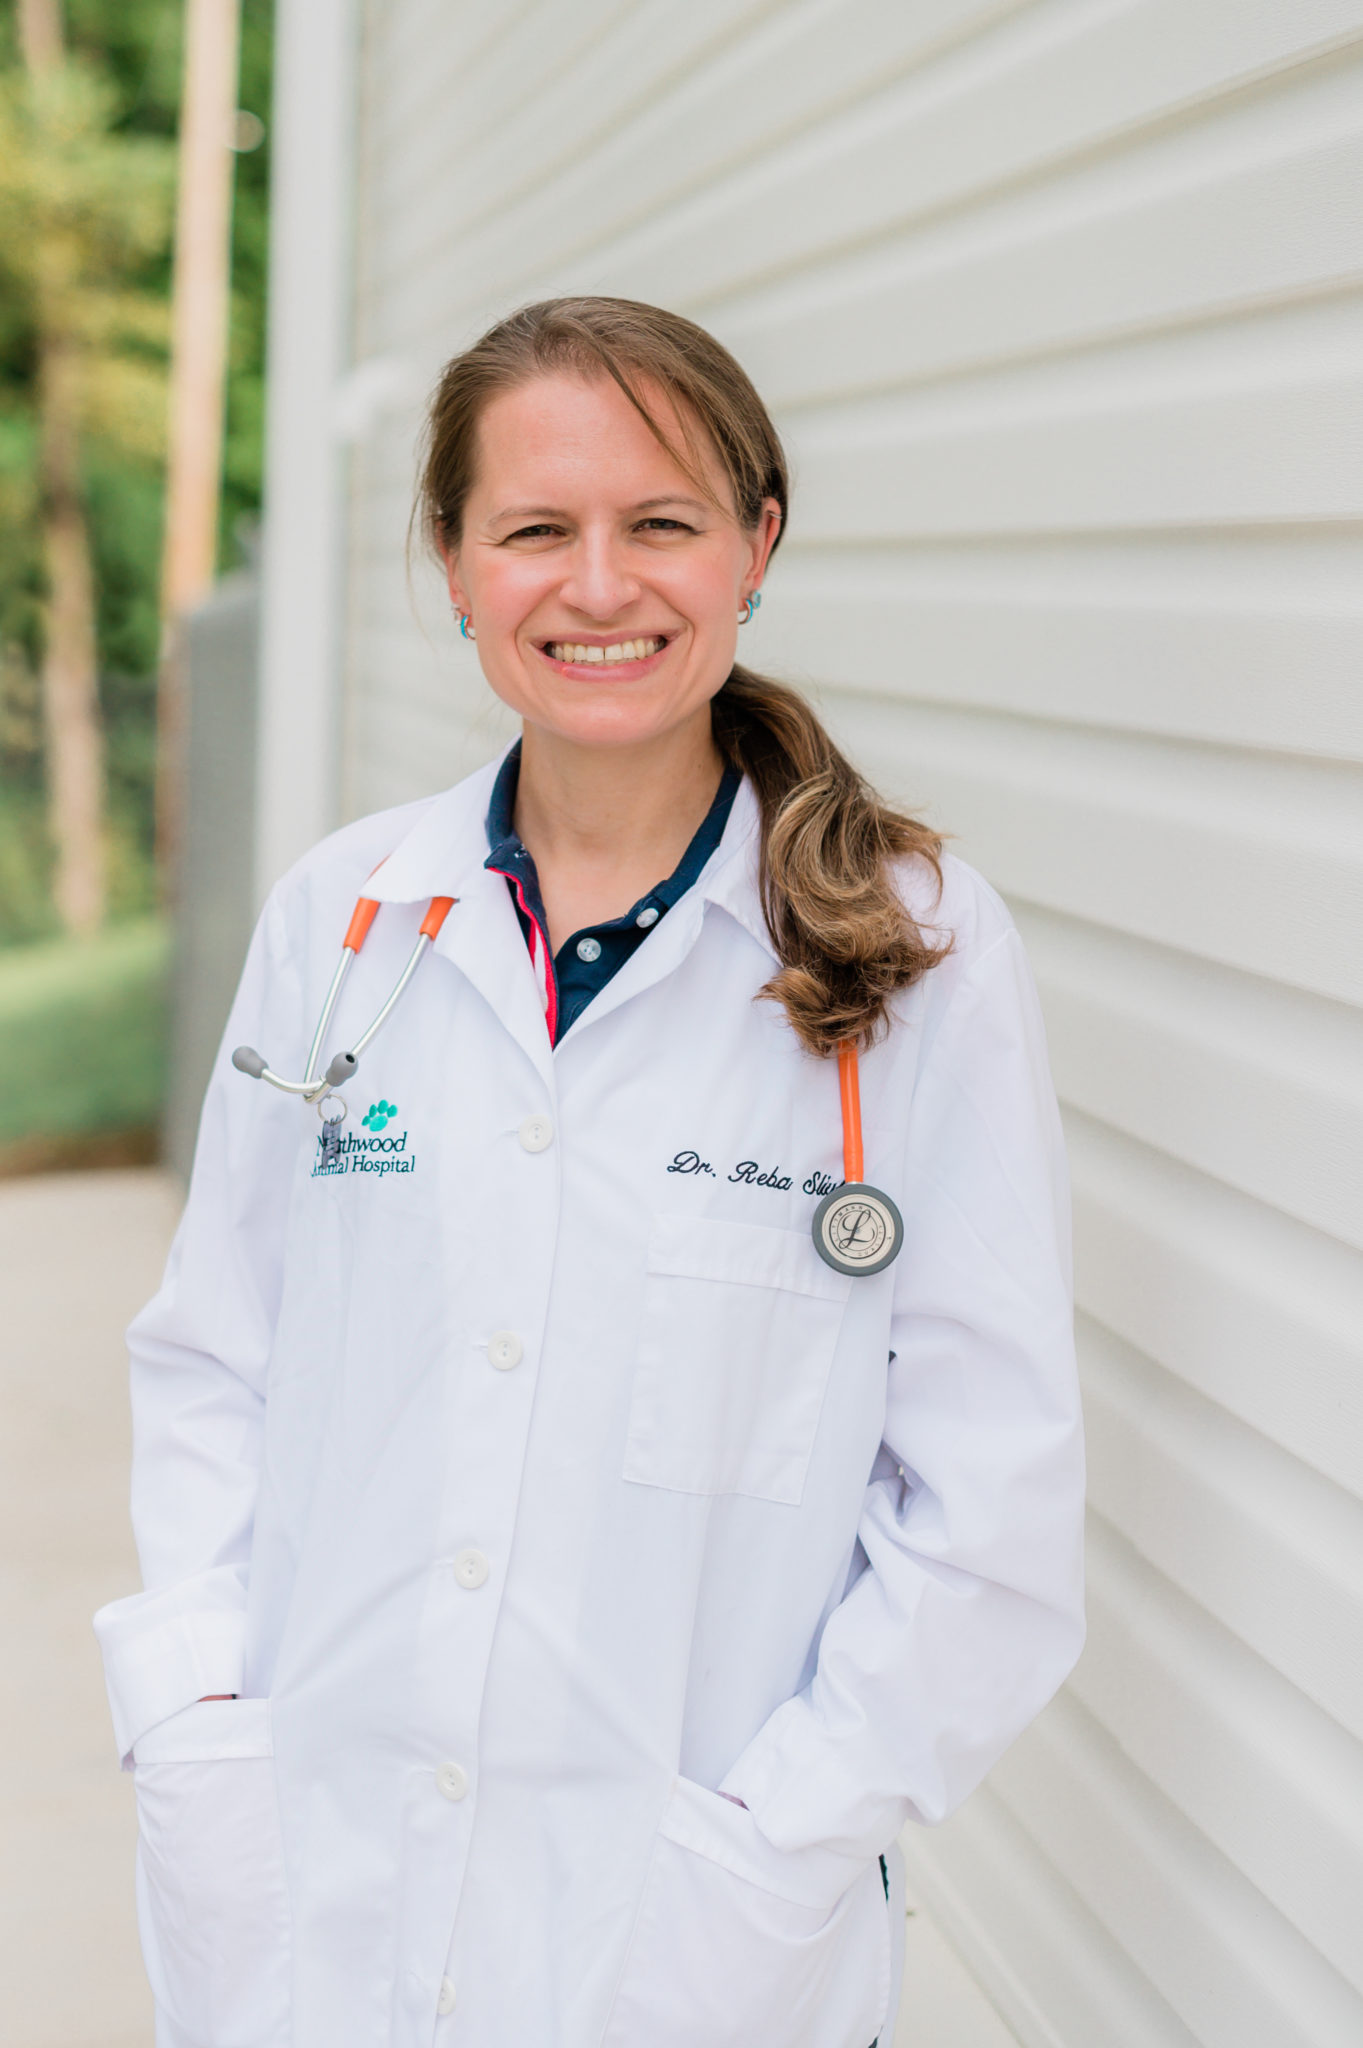 Dr. Silvka stands smiling at the camera, wearing a Northwood Animal Hospital coat.